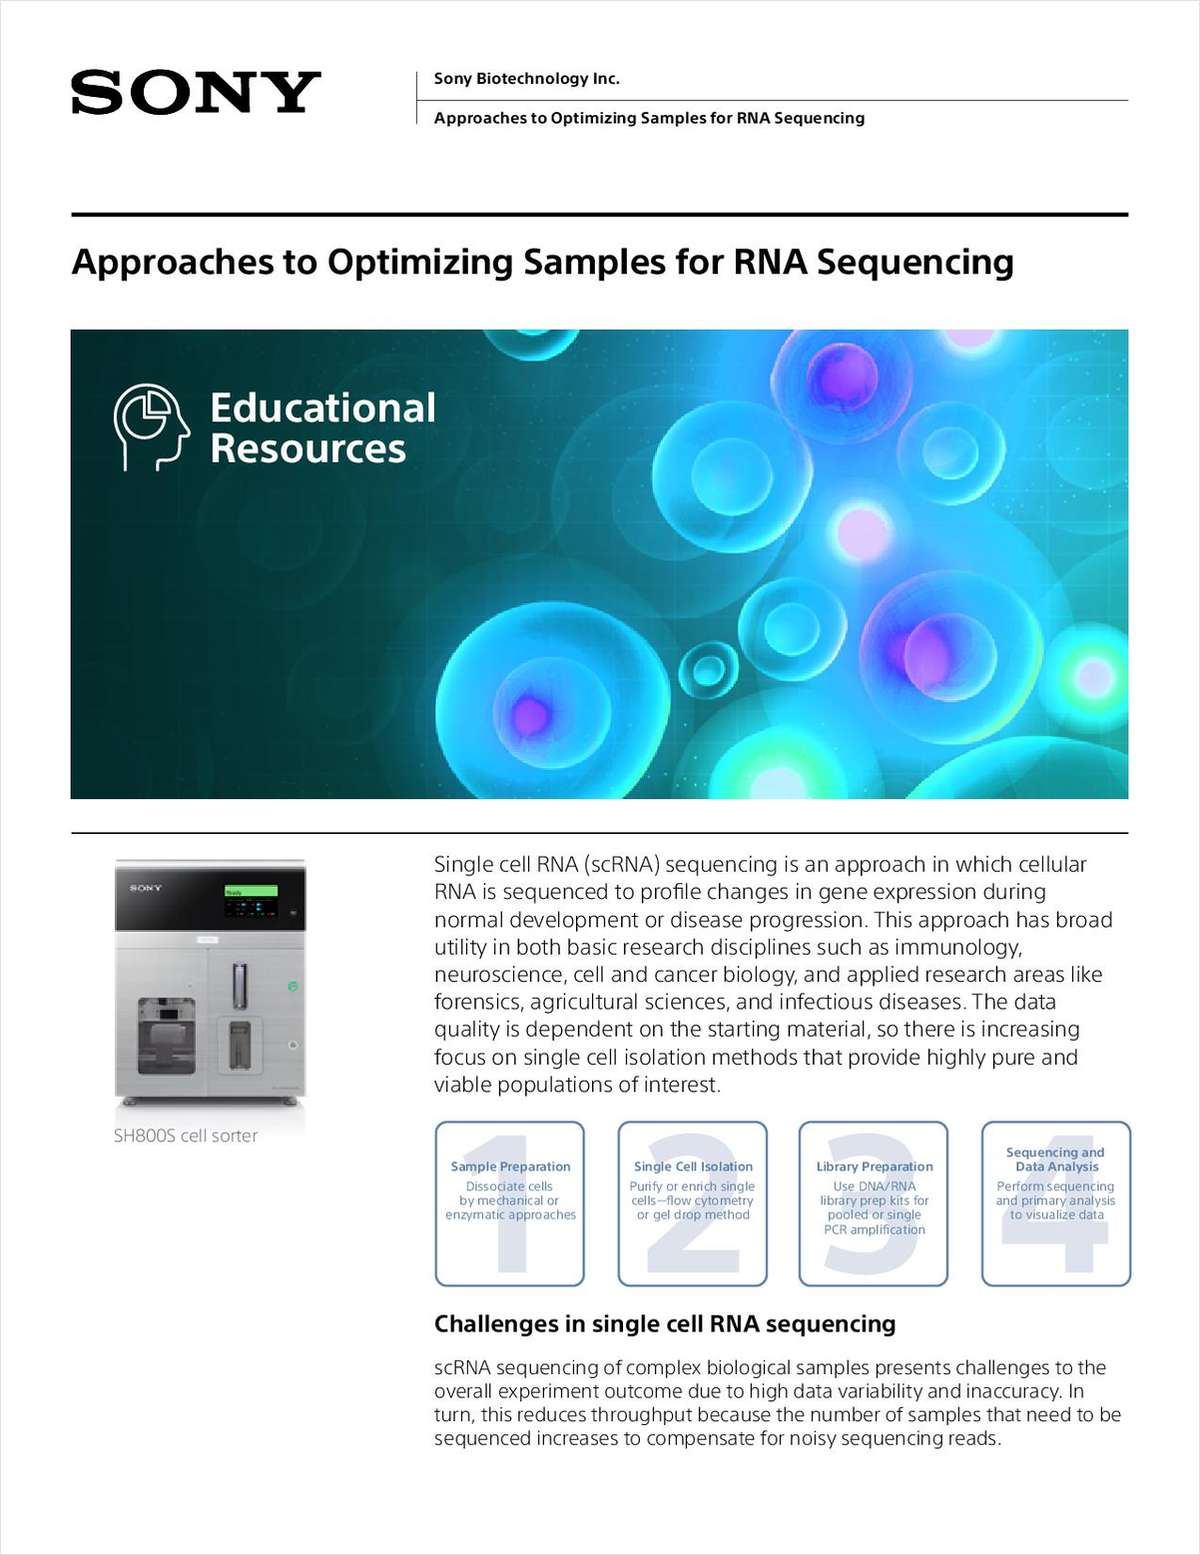 Approaches to Optimizing Samples for RNA Sequencing